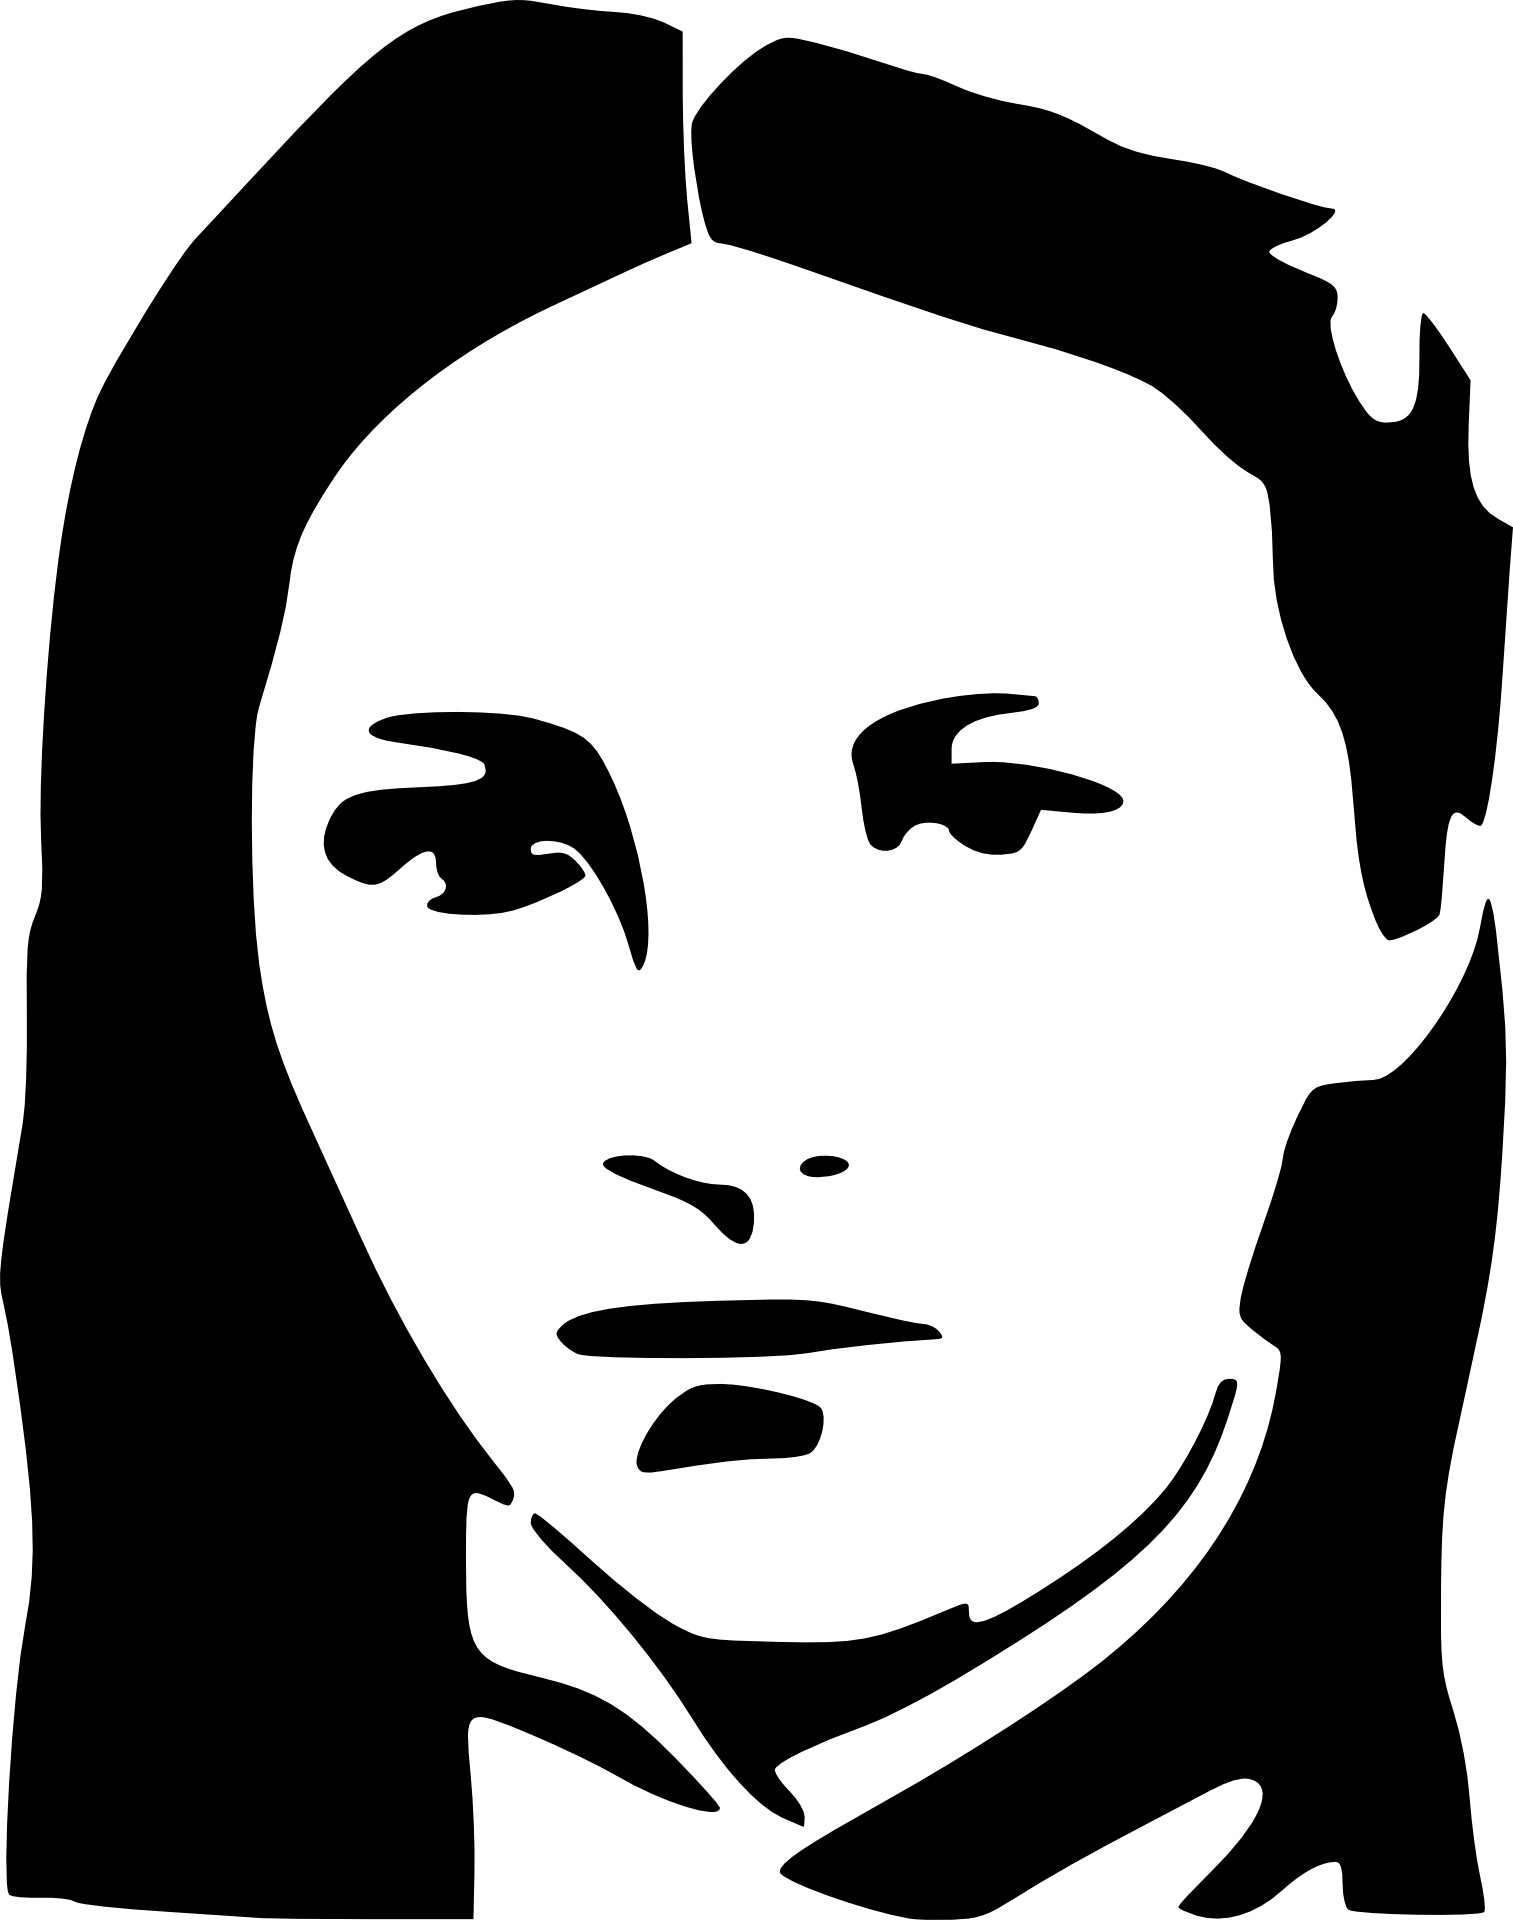 1513x1920 Black And White Drawing Of Young Woman's Face Free Image